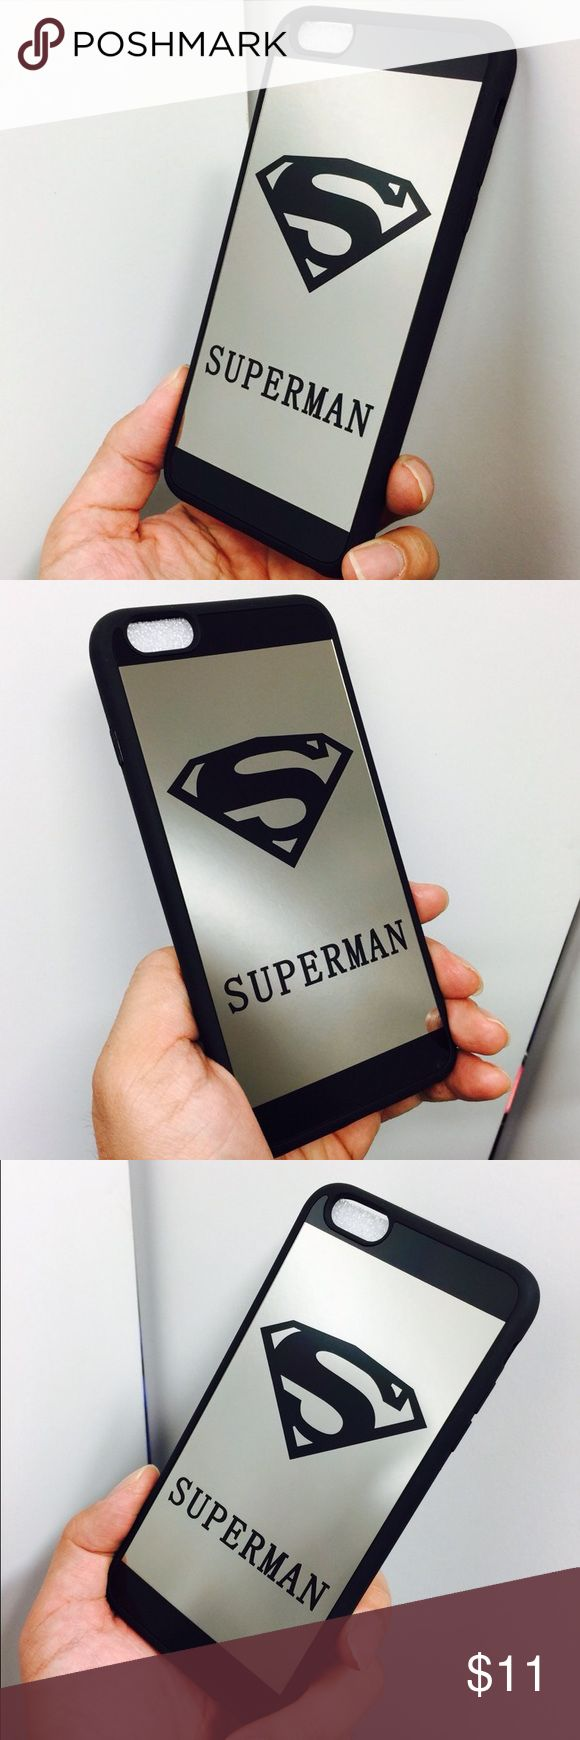 "Shockproof Superman hybrid mirror case i6/6s Shockproof Superman hybrid mirror case i6/6s Brand new high quality shockproof and anti-drop Superman mirror case on sale!  Compatible Size: iPhone 6 & 6s  Color : Black Please make sure you are purchasing the right size case.  This case is also available for iPhone 6 Plus / 6s Plus. Please leave me a message if you need the case for iPhone 6 Plus / 6s Plus, 5.5"". Accessories"